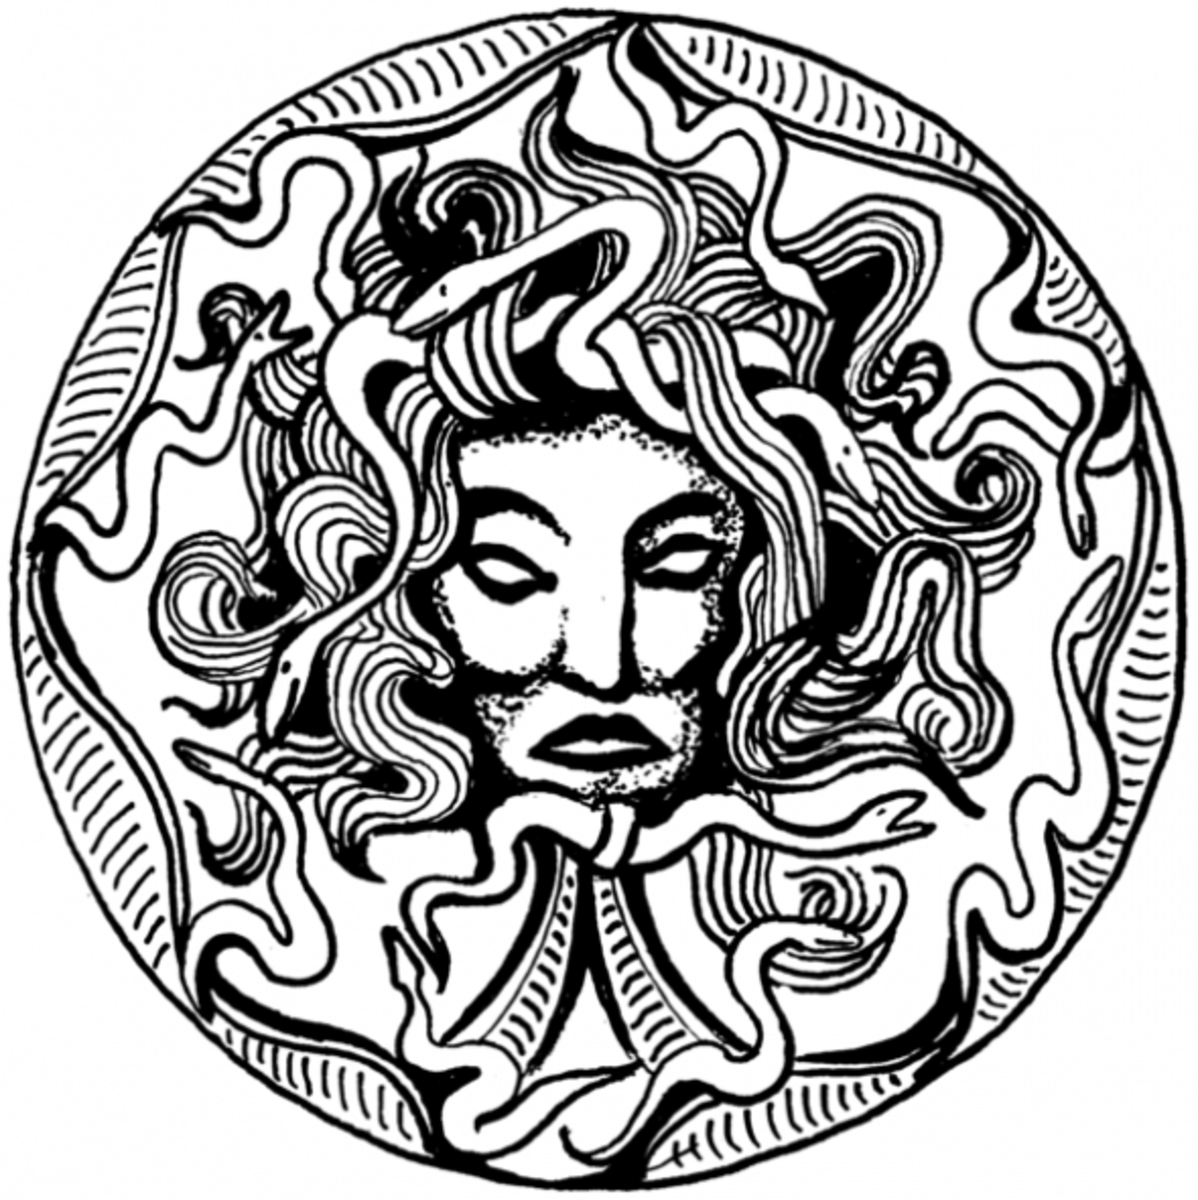 Medusa free coloring page